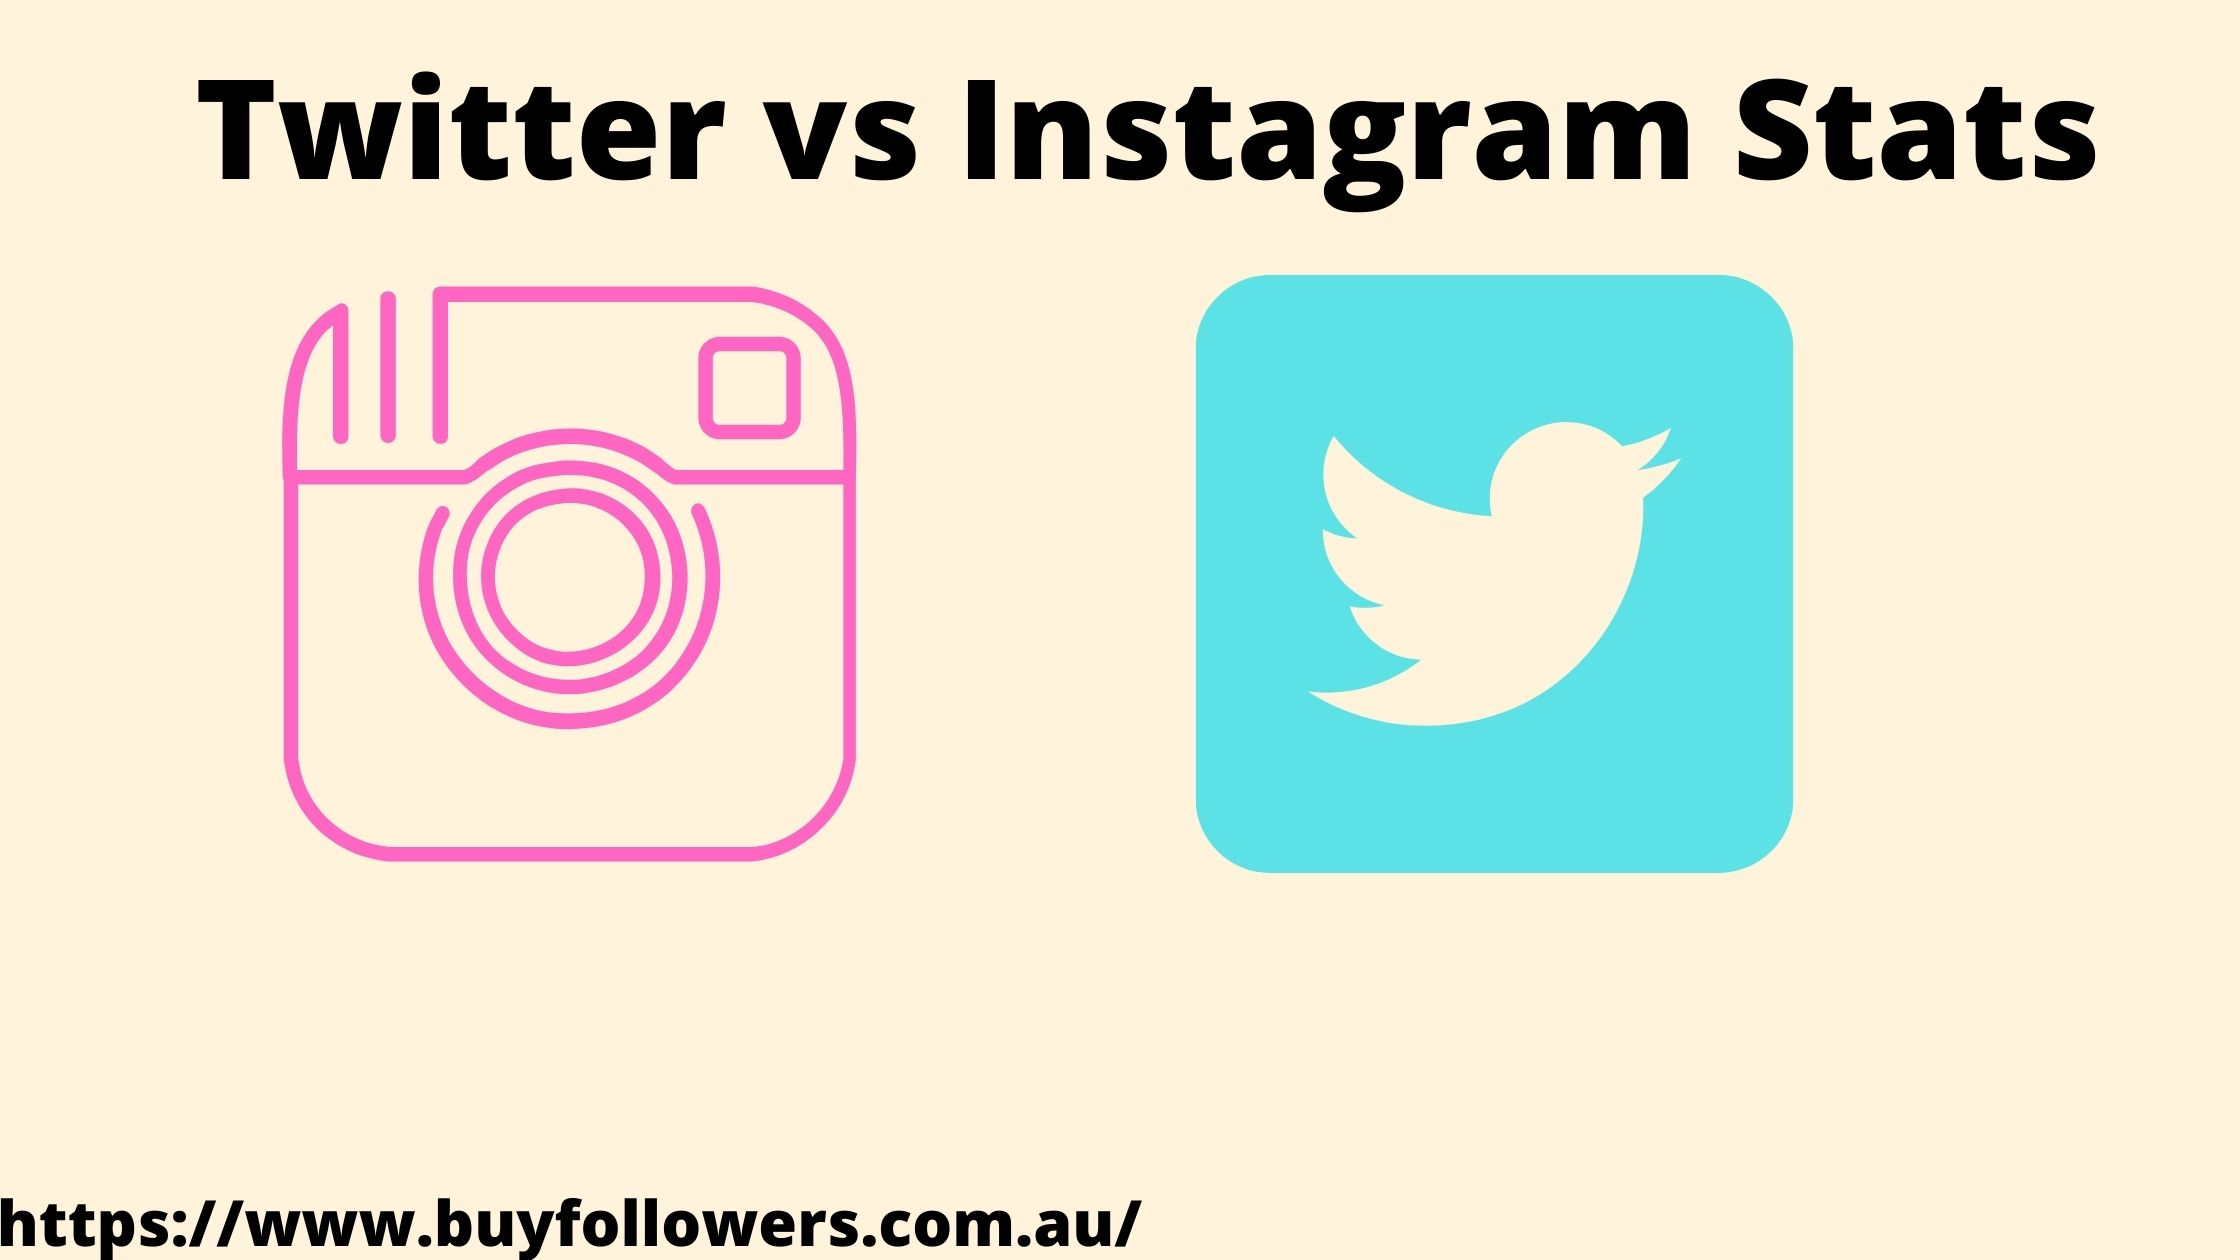 Twitter vs. Instagram: Which is the best for your product